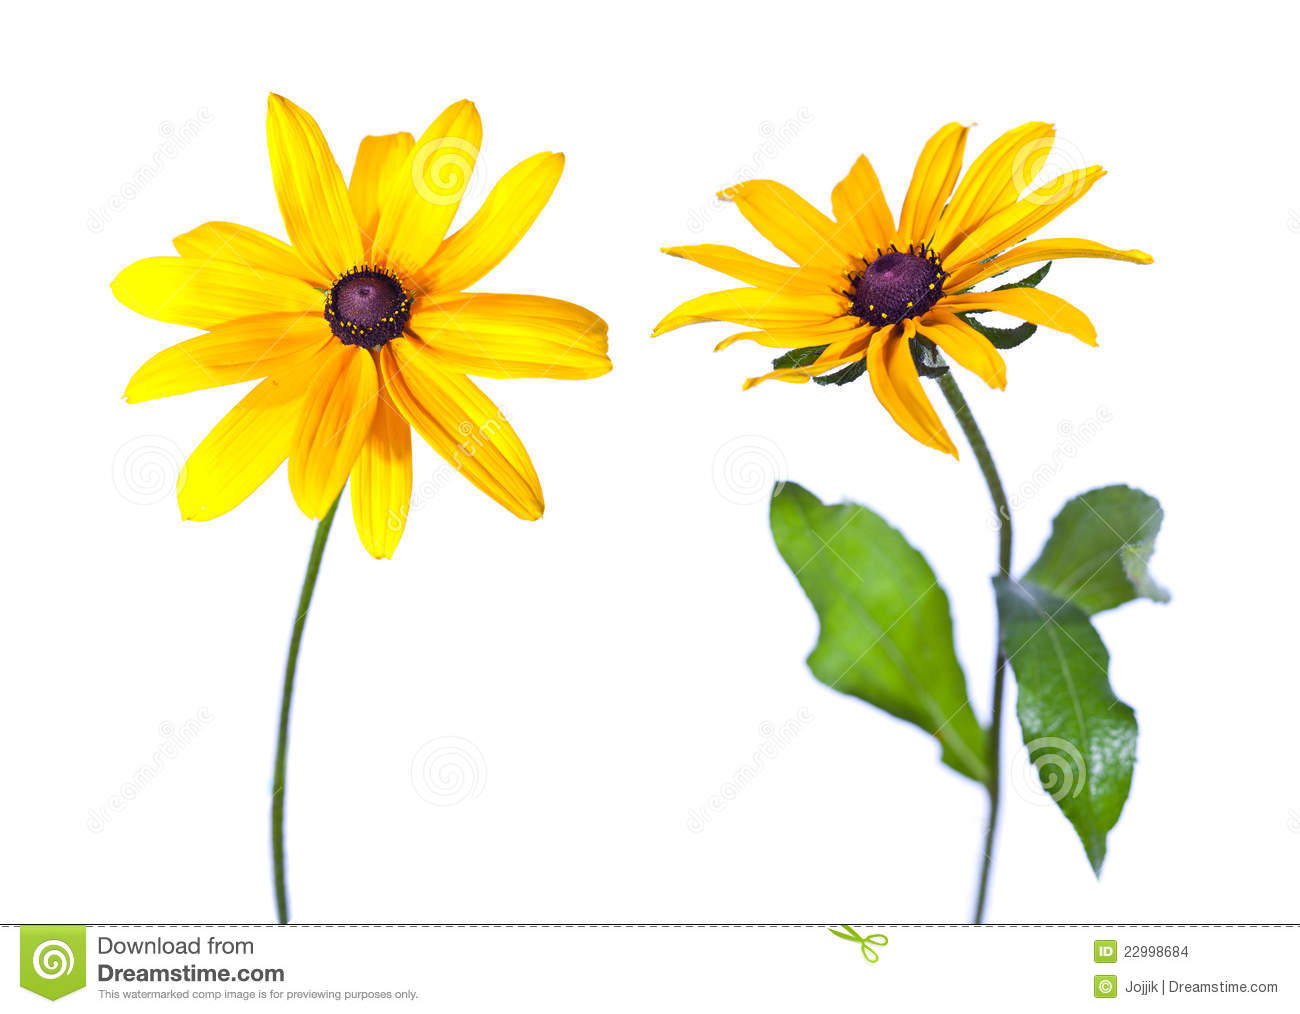 Black-eyed Susan clipart #1, Download drawings